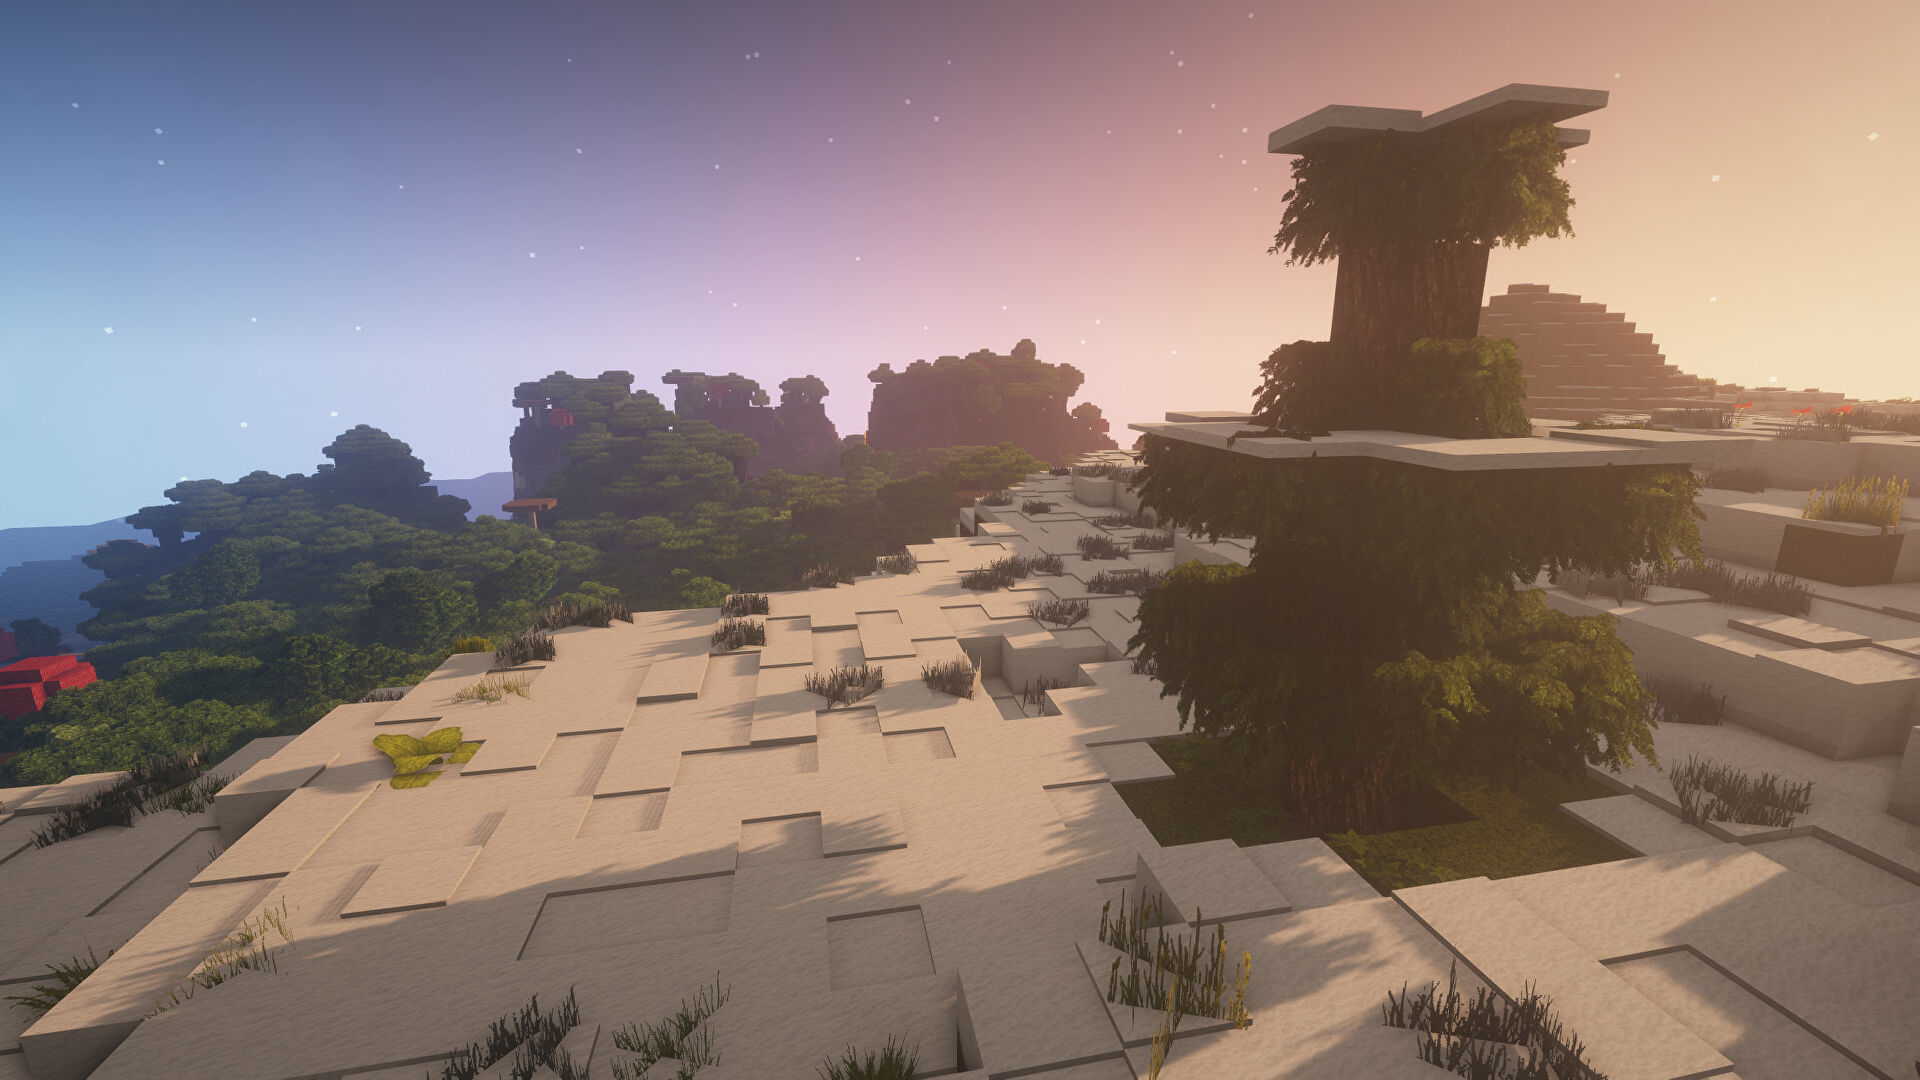 A Minecraft screenshot of a landscape displayed using the Epic Adventures Texture Pack.